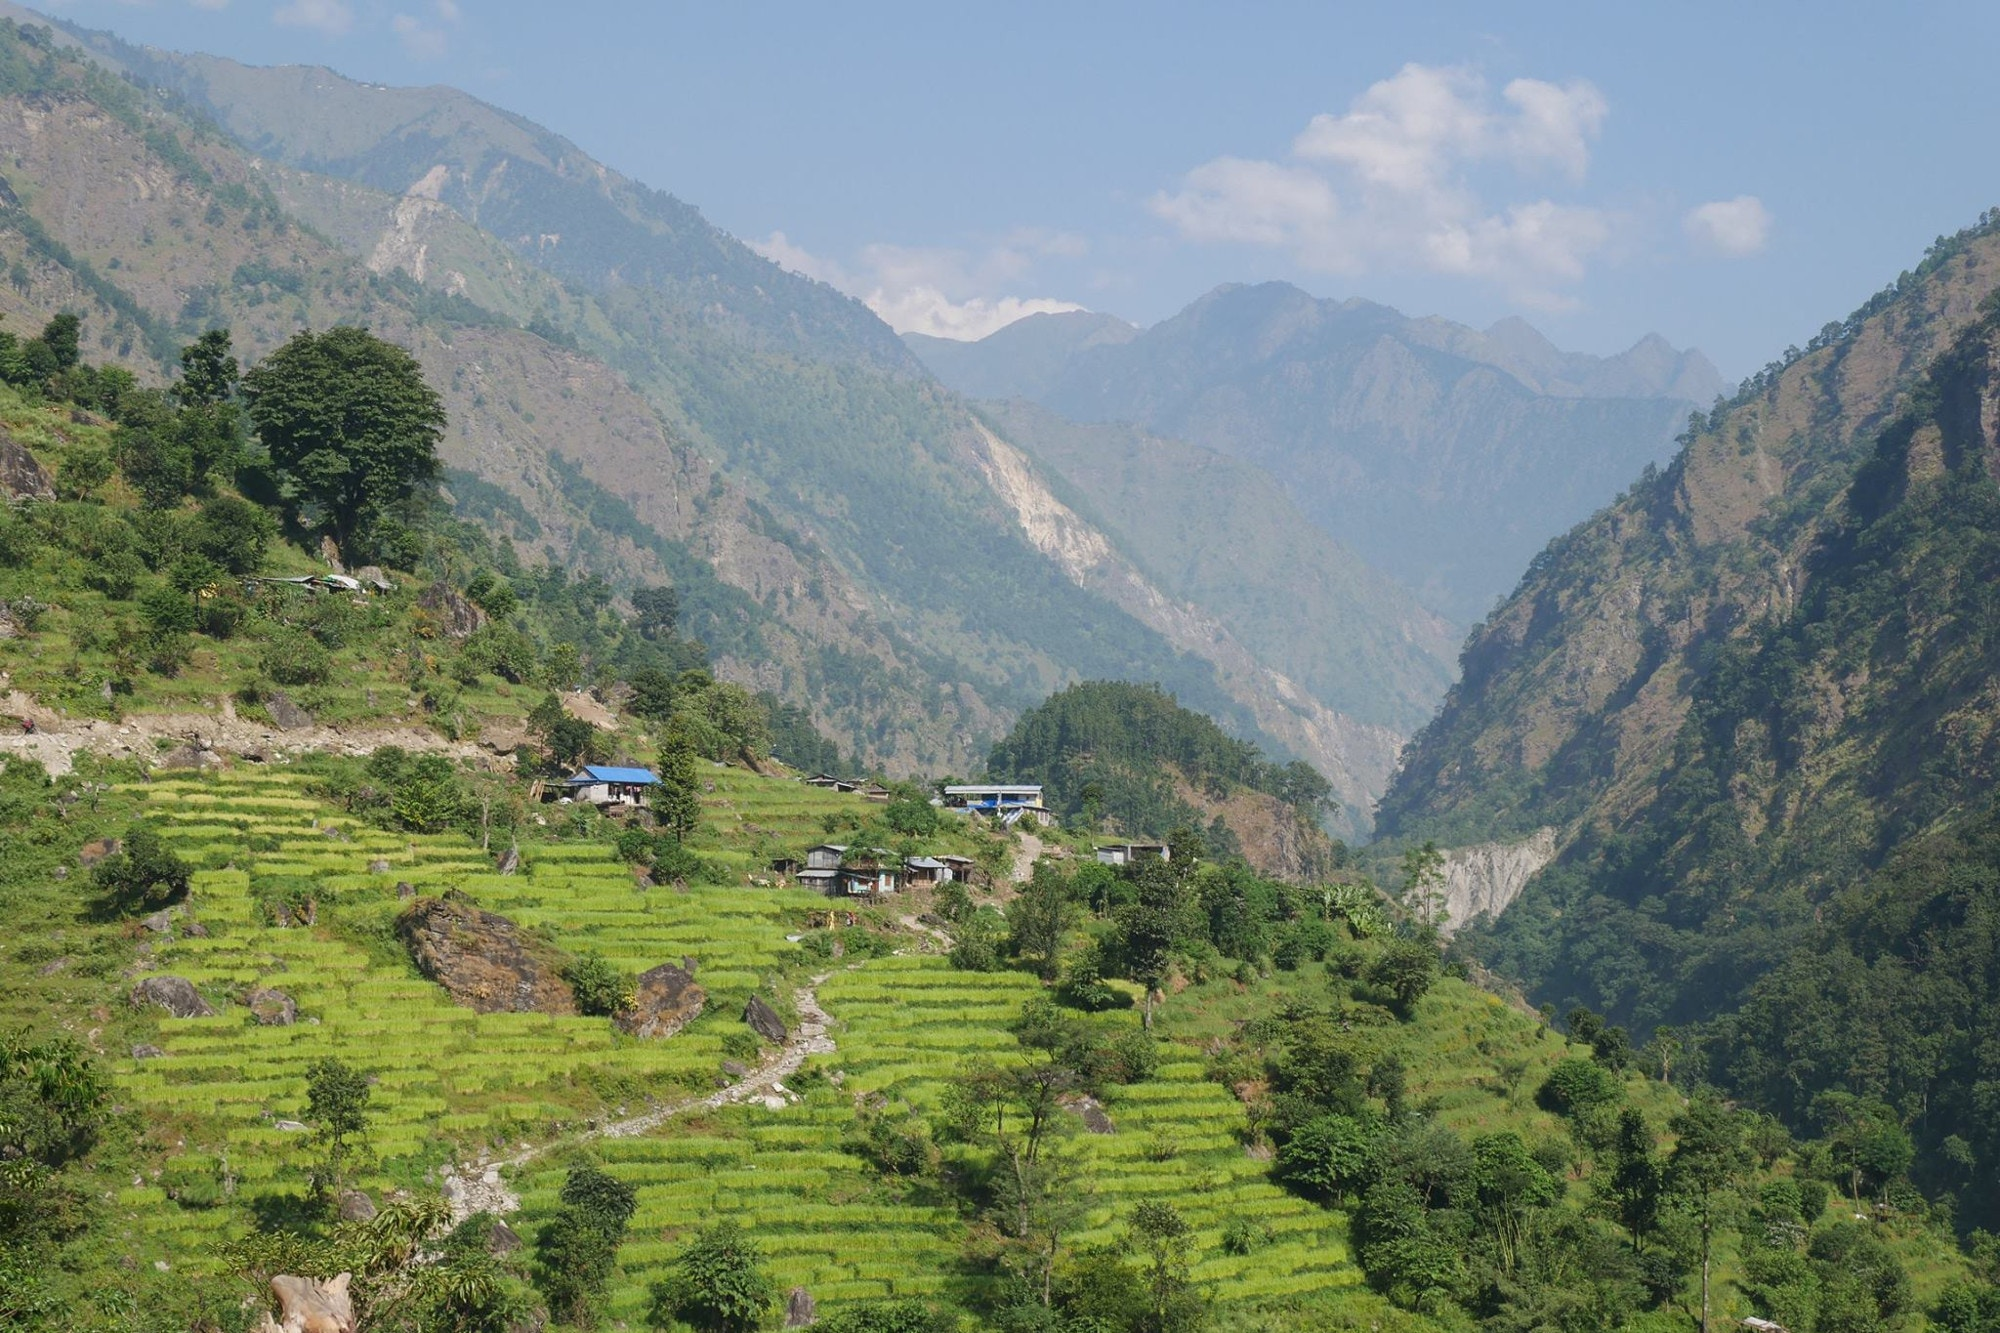 A view across a valley in the Nepal Himalaya